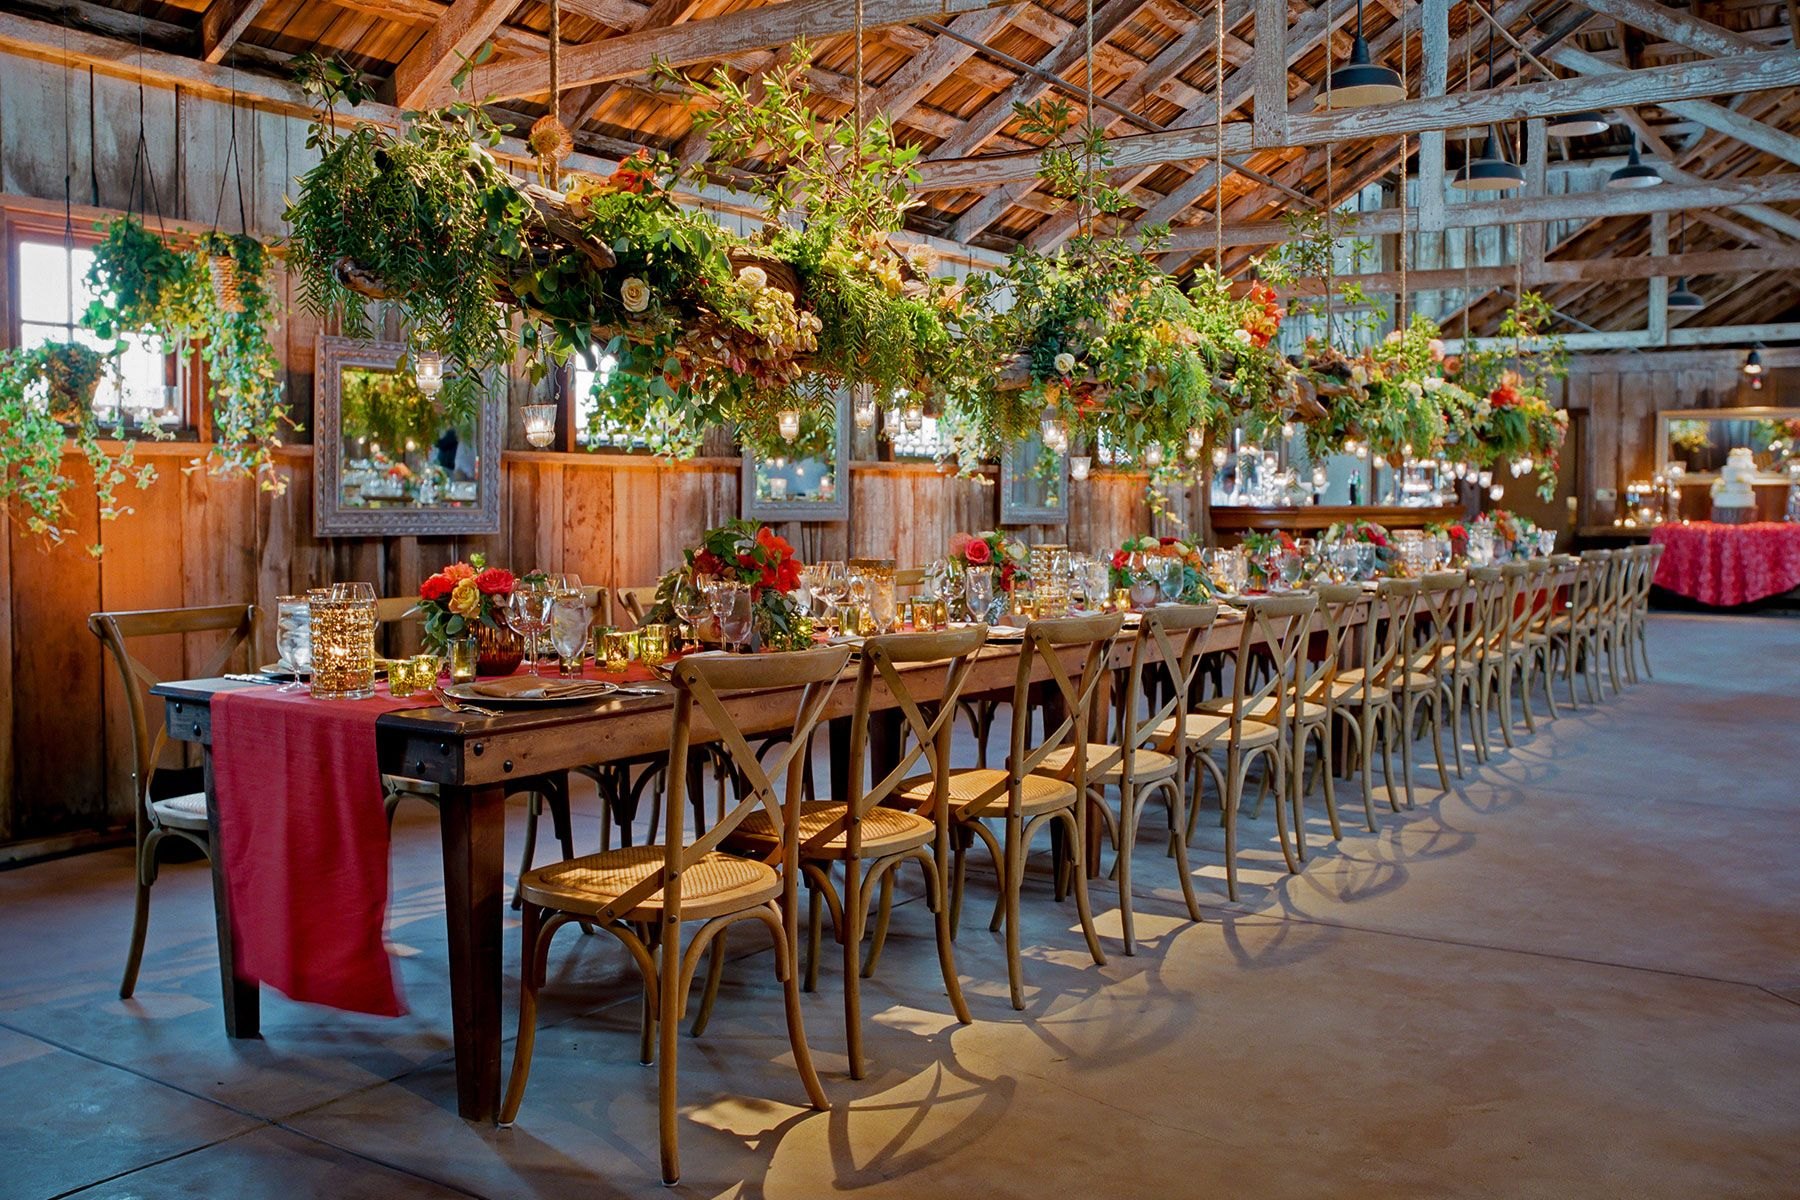 Natura And Rustic Kings Tables Topped With Orange Peach And Gold - King's table restaurant